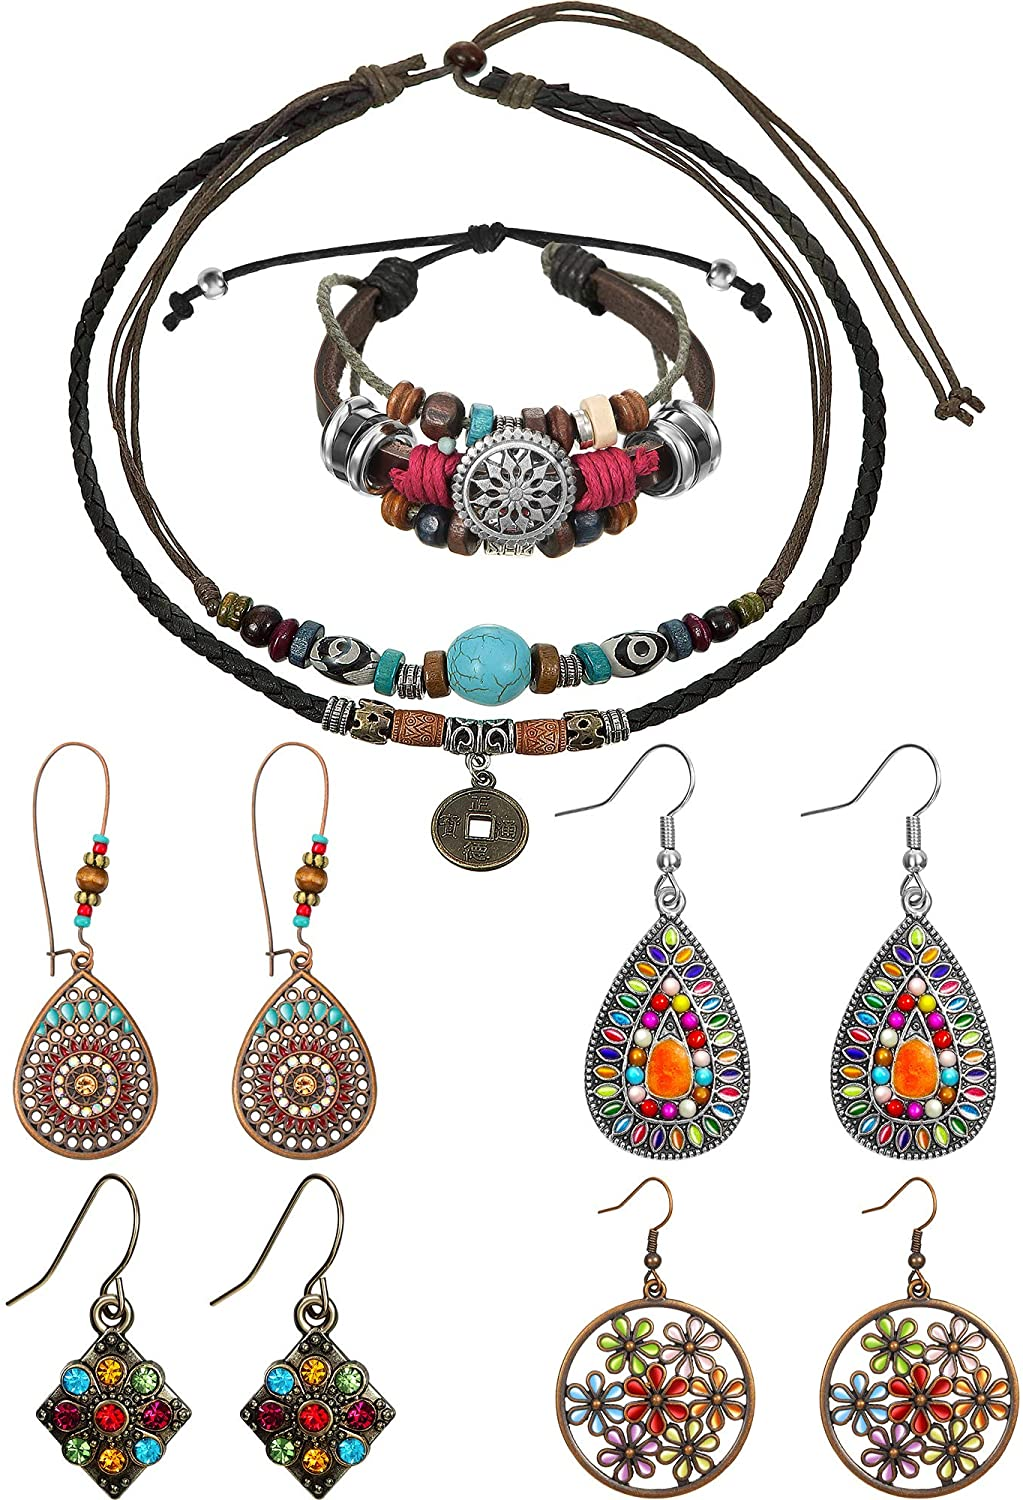 Hicarer Leather Necklace Bead Choker Adjustable Vintage Turquoise Necklace Handmade Woven Beaded Bracelet with 4 Pairs Bohemian Vintage Dangle Earrings Jewelry for Women